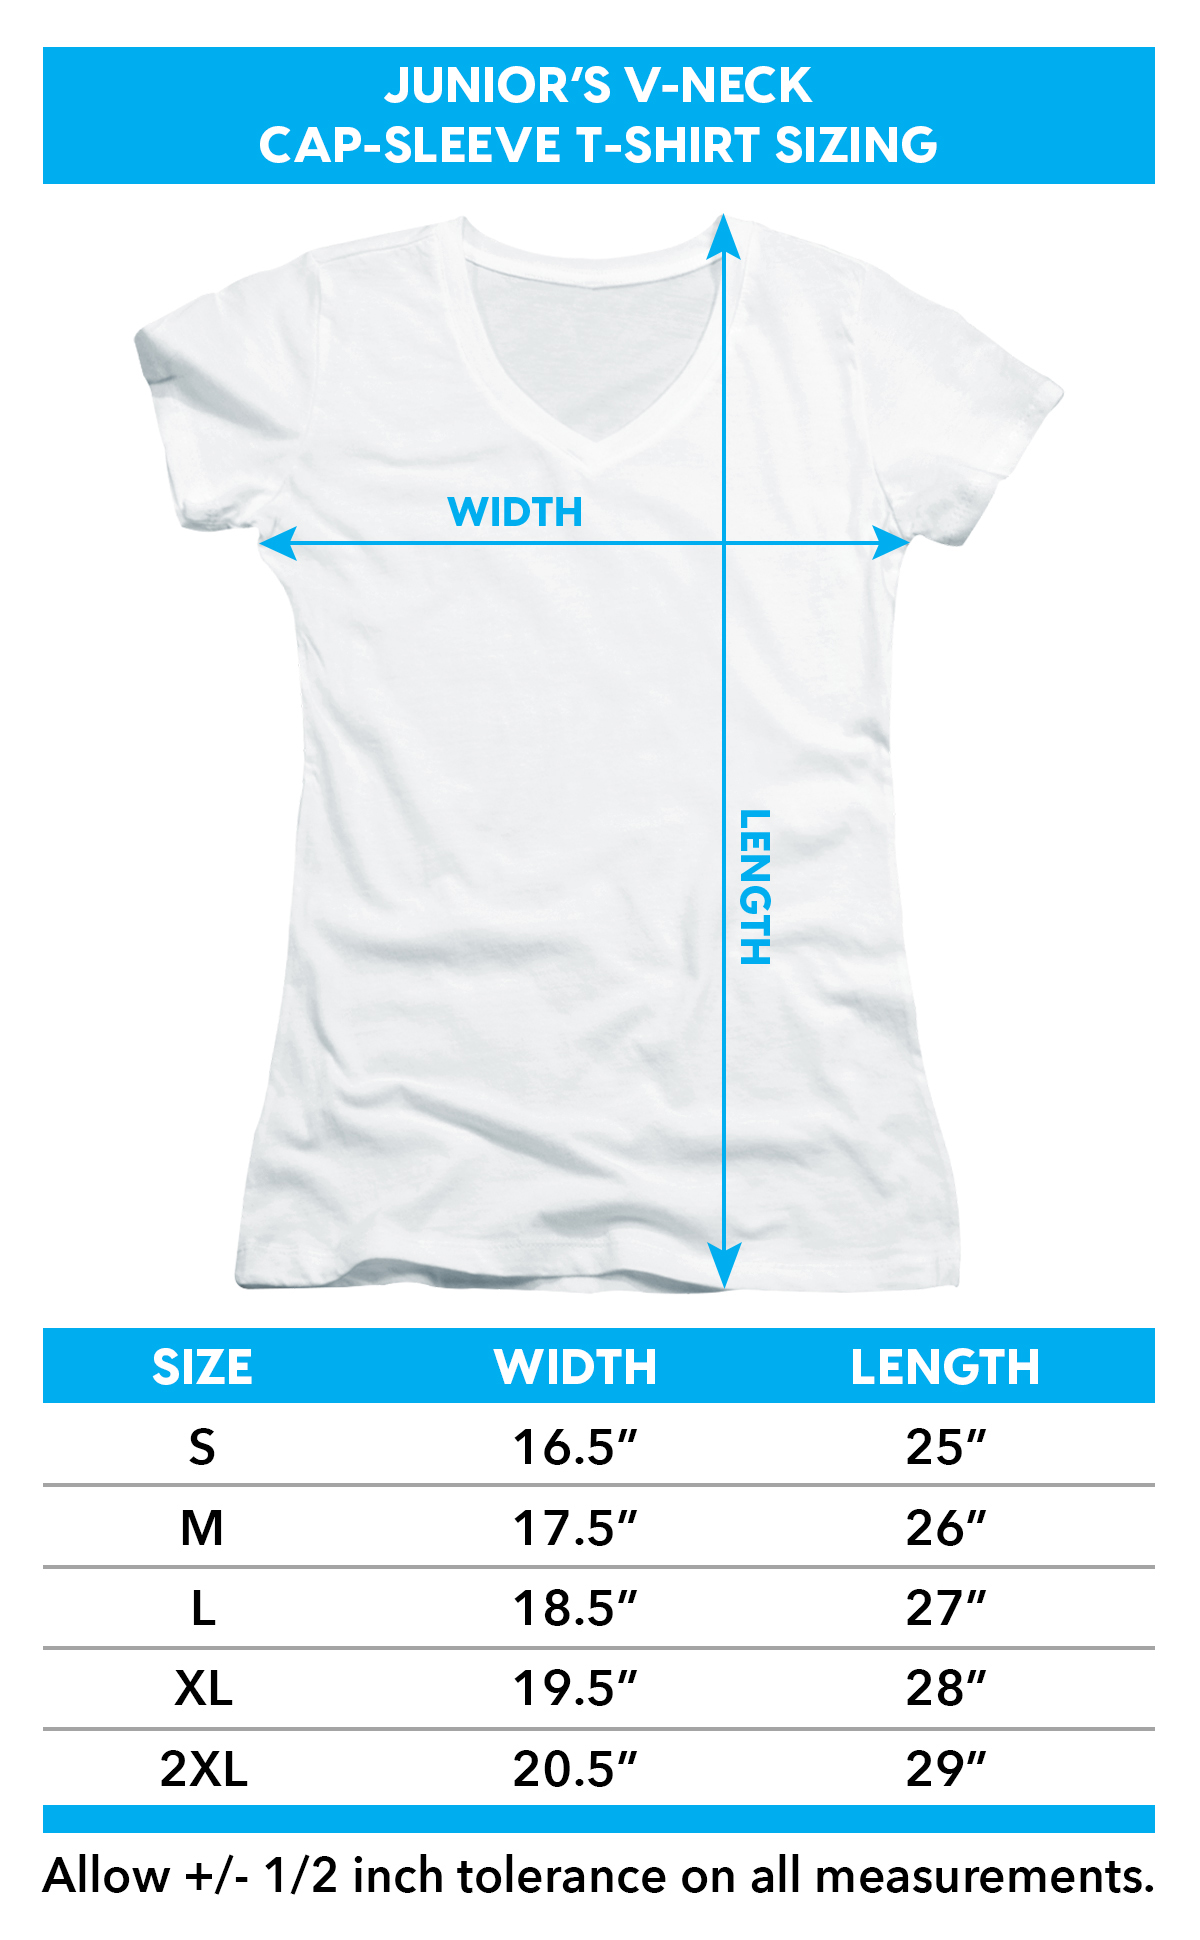 Sizing chart for The Phantom Girls V Neck - Evildoers Beware TRV-KSF135-JV